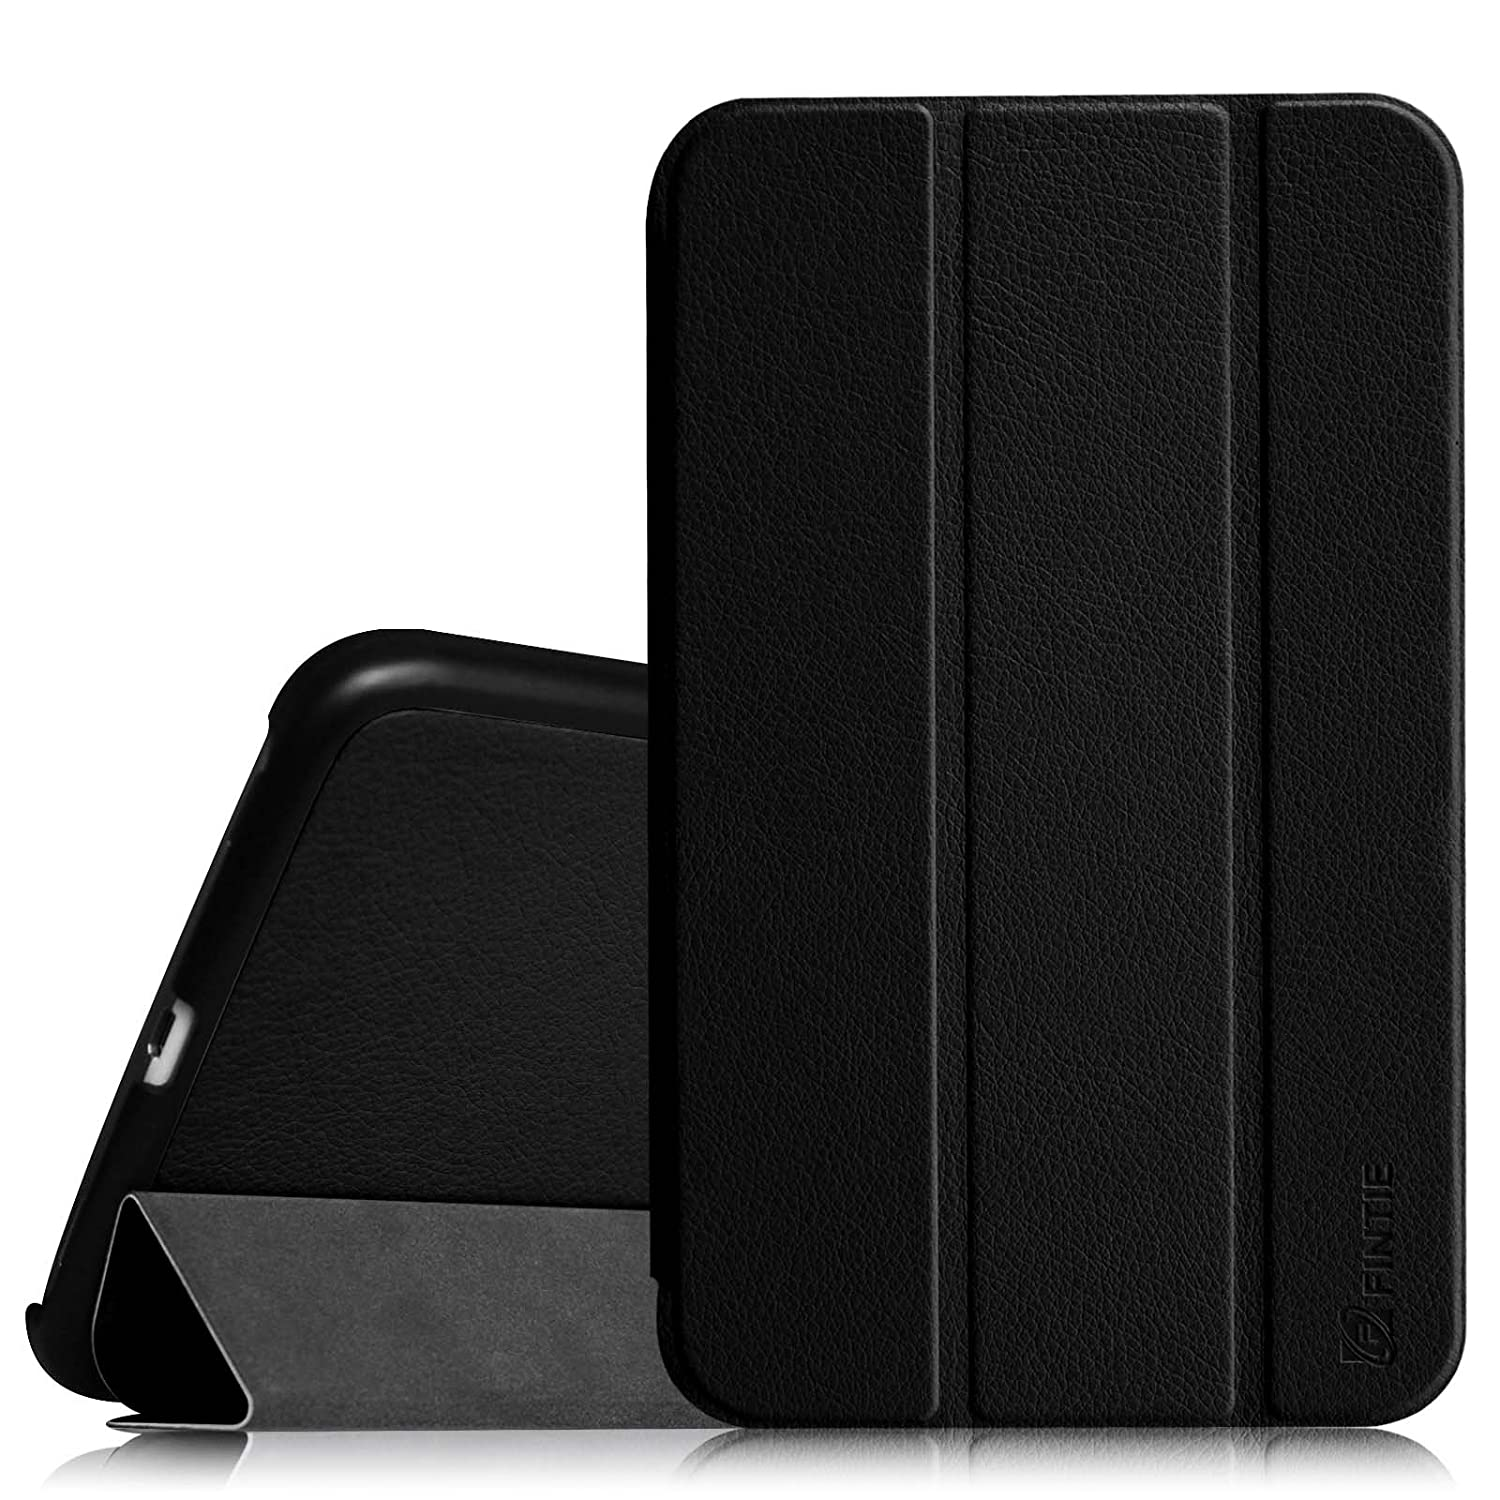 new arrival a3b53 27263 Fintie Slim Shell Case for Samsung Galaxy Tab 4 7.0 - Ultra Lightweight  Protective Stand Cover for Samsung Tab 4 7.0(7-Inch) Tablet, Black